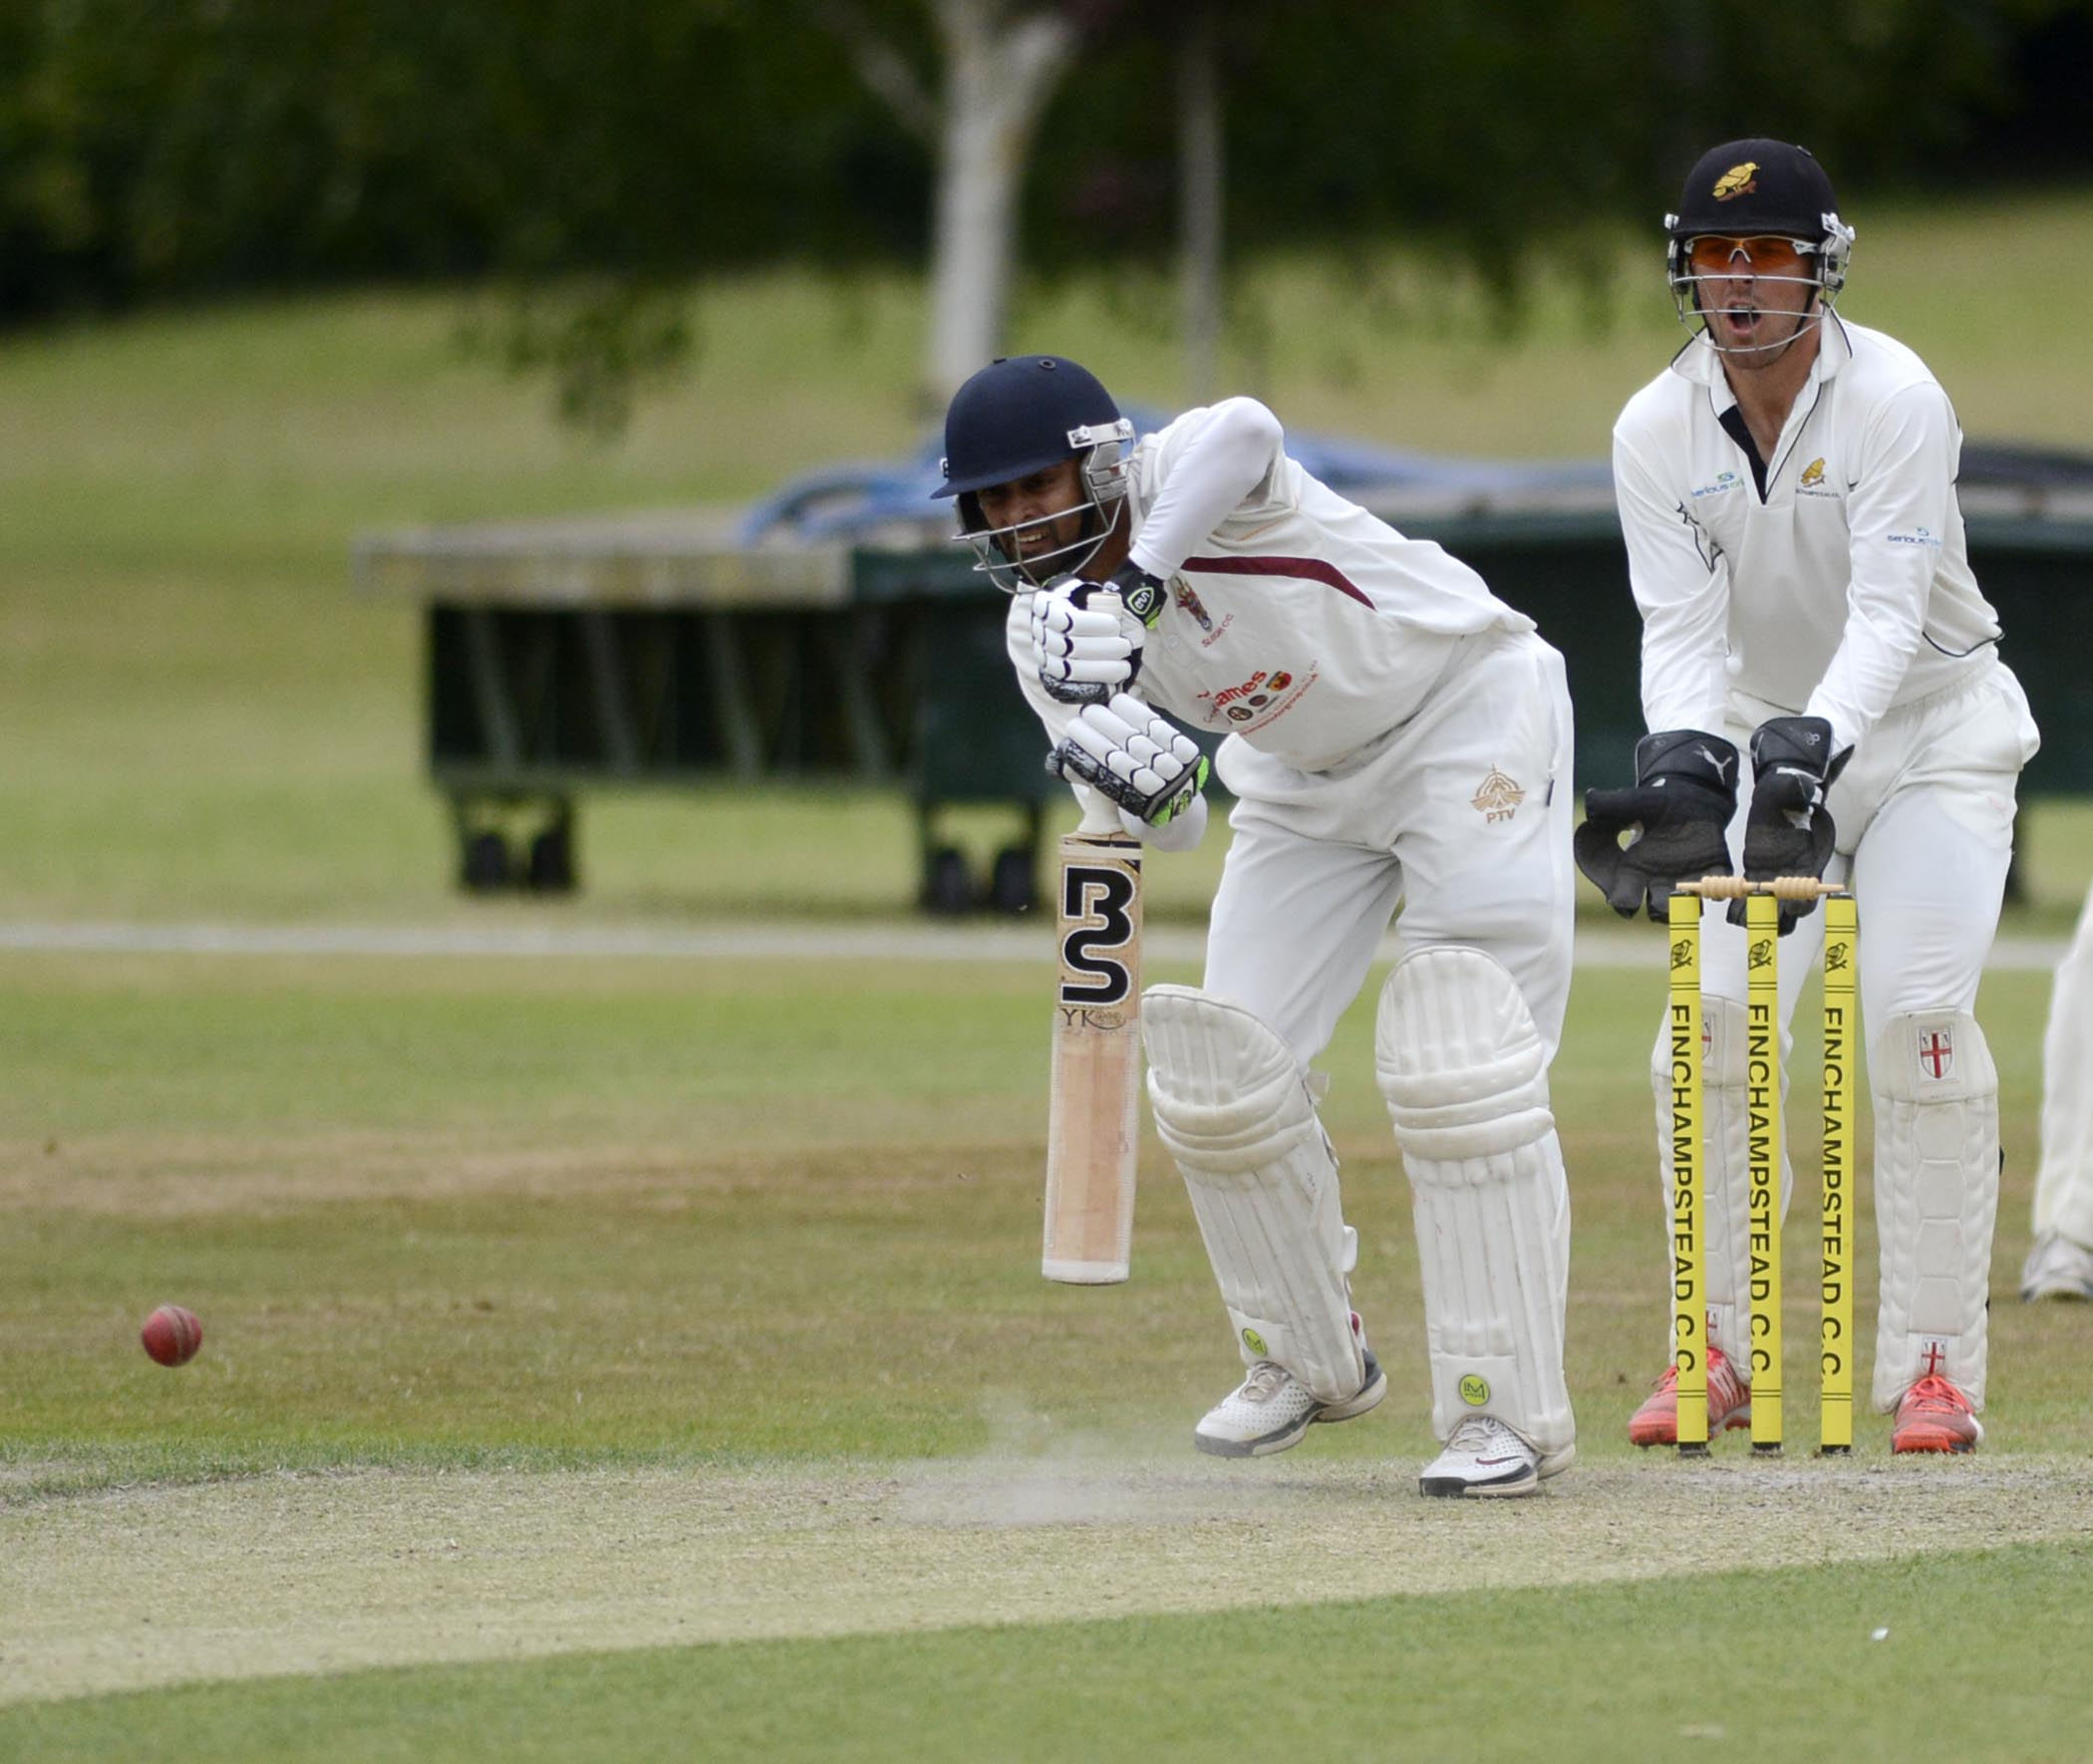 Overseas star Zohaib Ahmed (batting) made 99 as Slough had a rain affected draw at Finchampstead on Saturday.